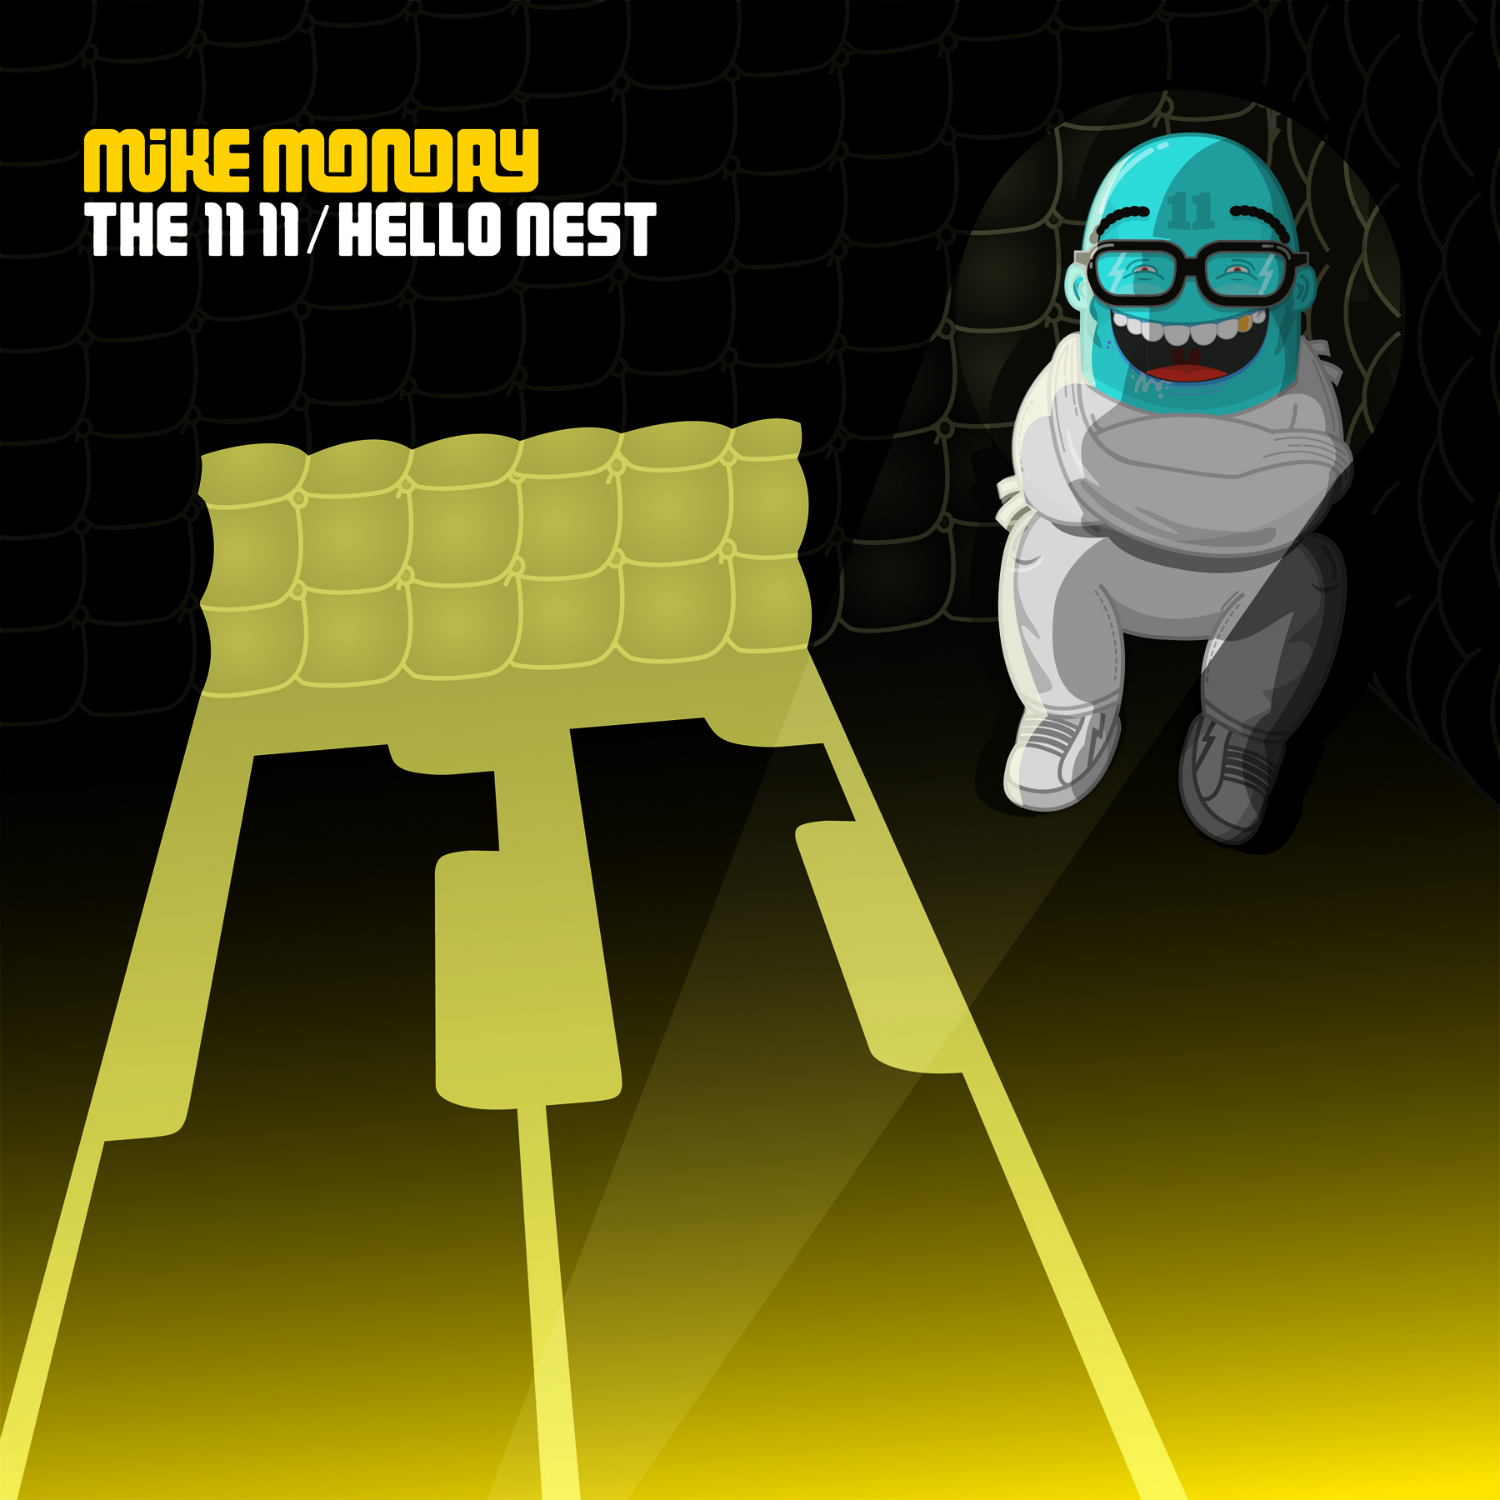 Mike Monday - The 11 11/Hello Nest